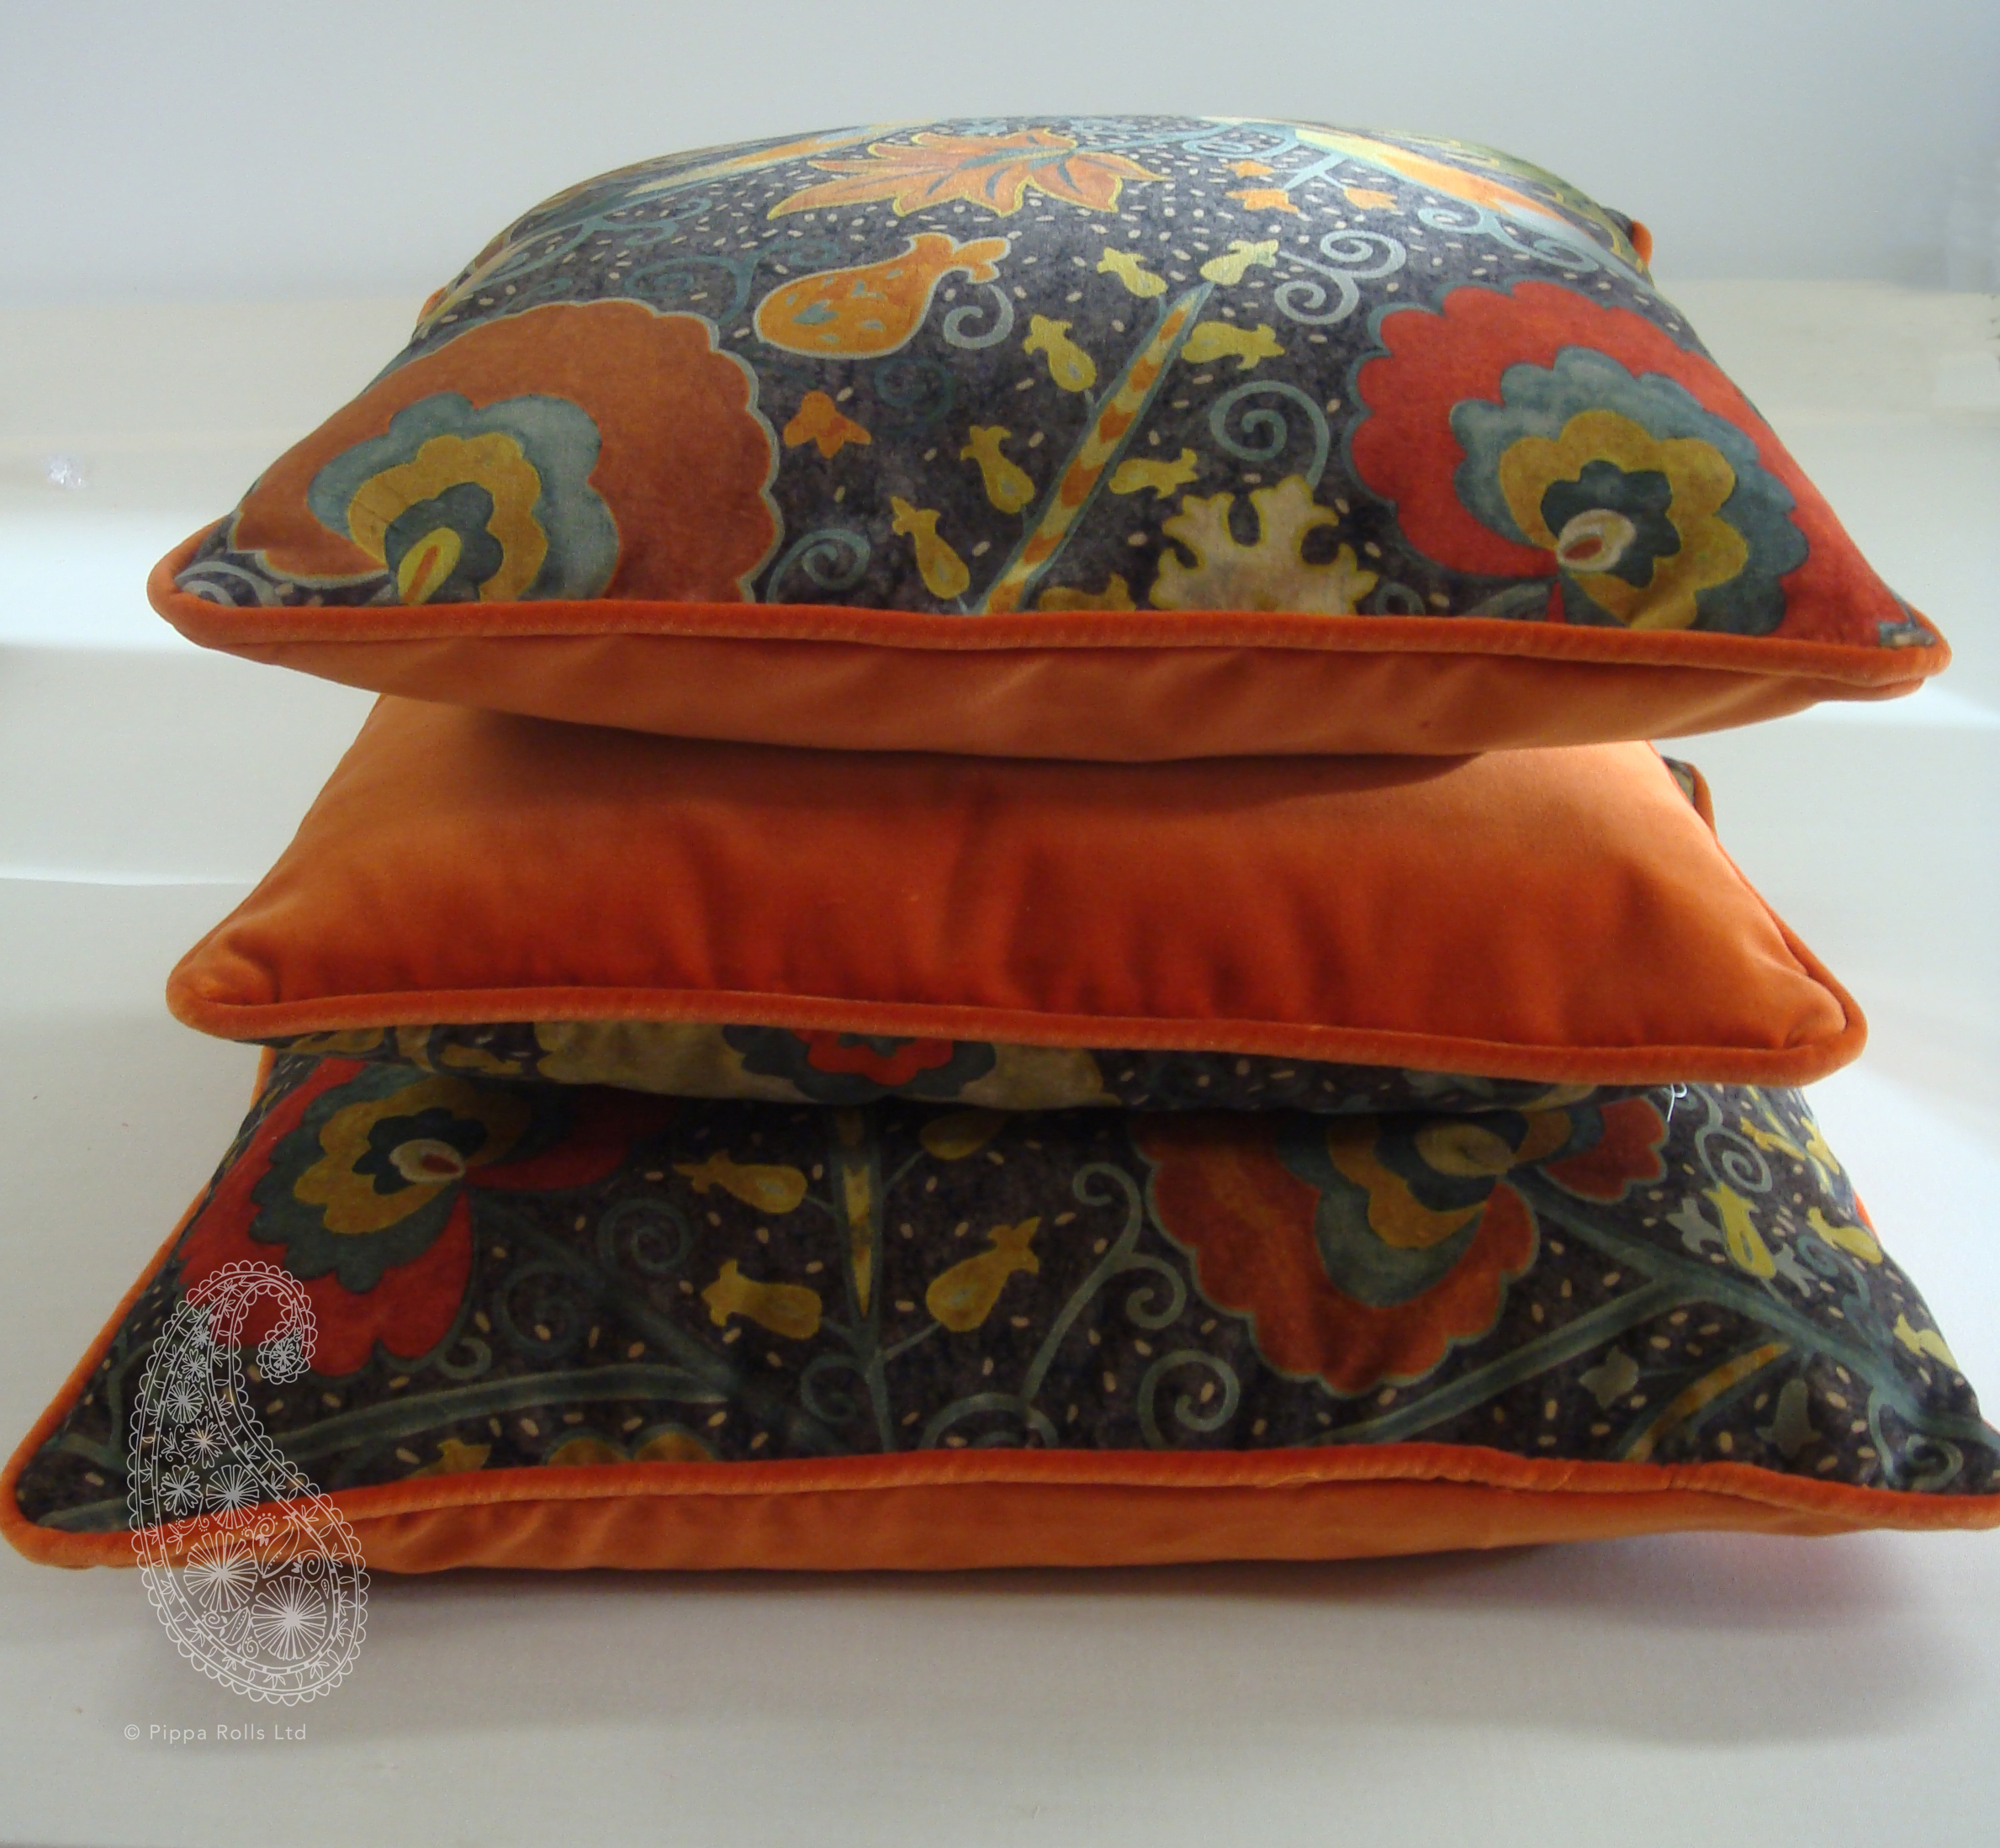 lewis and wood cushions by Pippa Rolls Limited jpeg.jpg